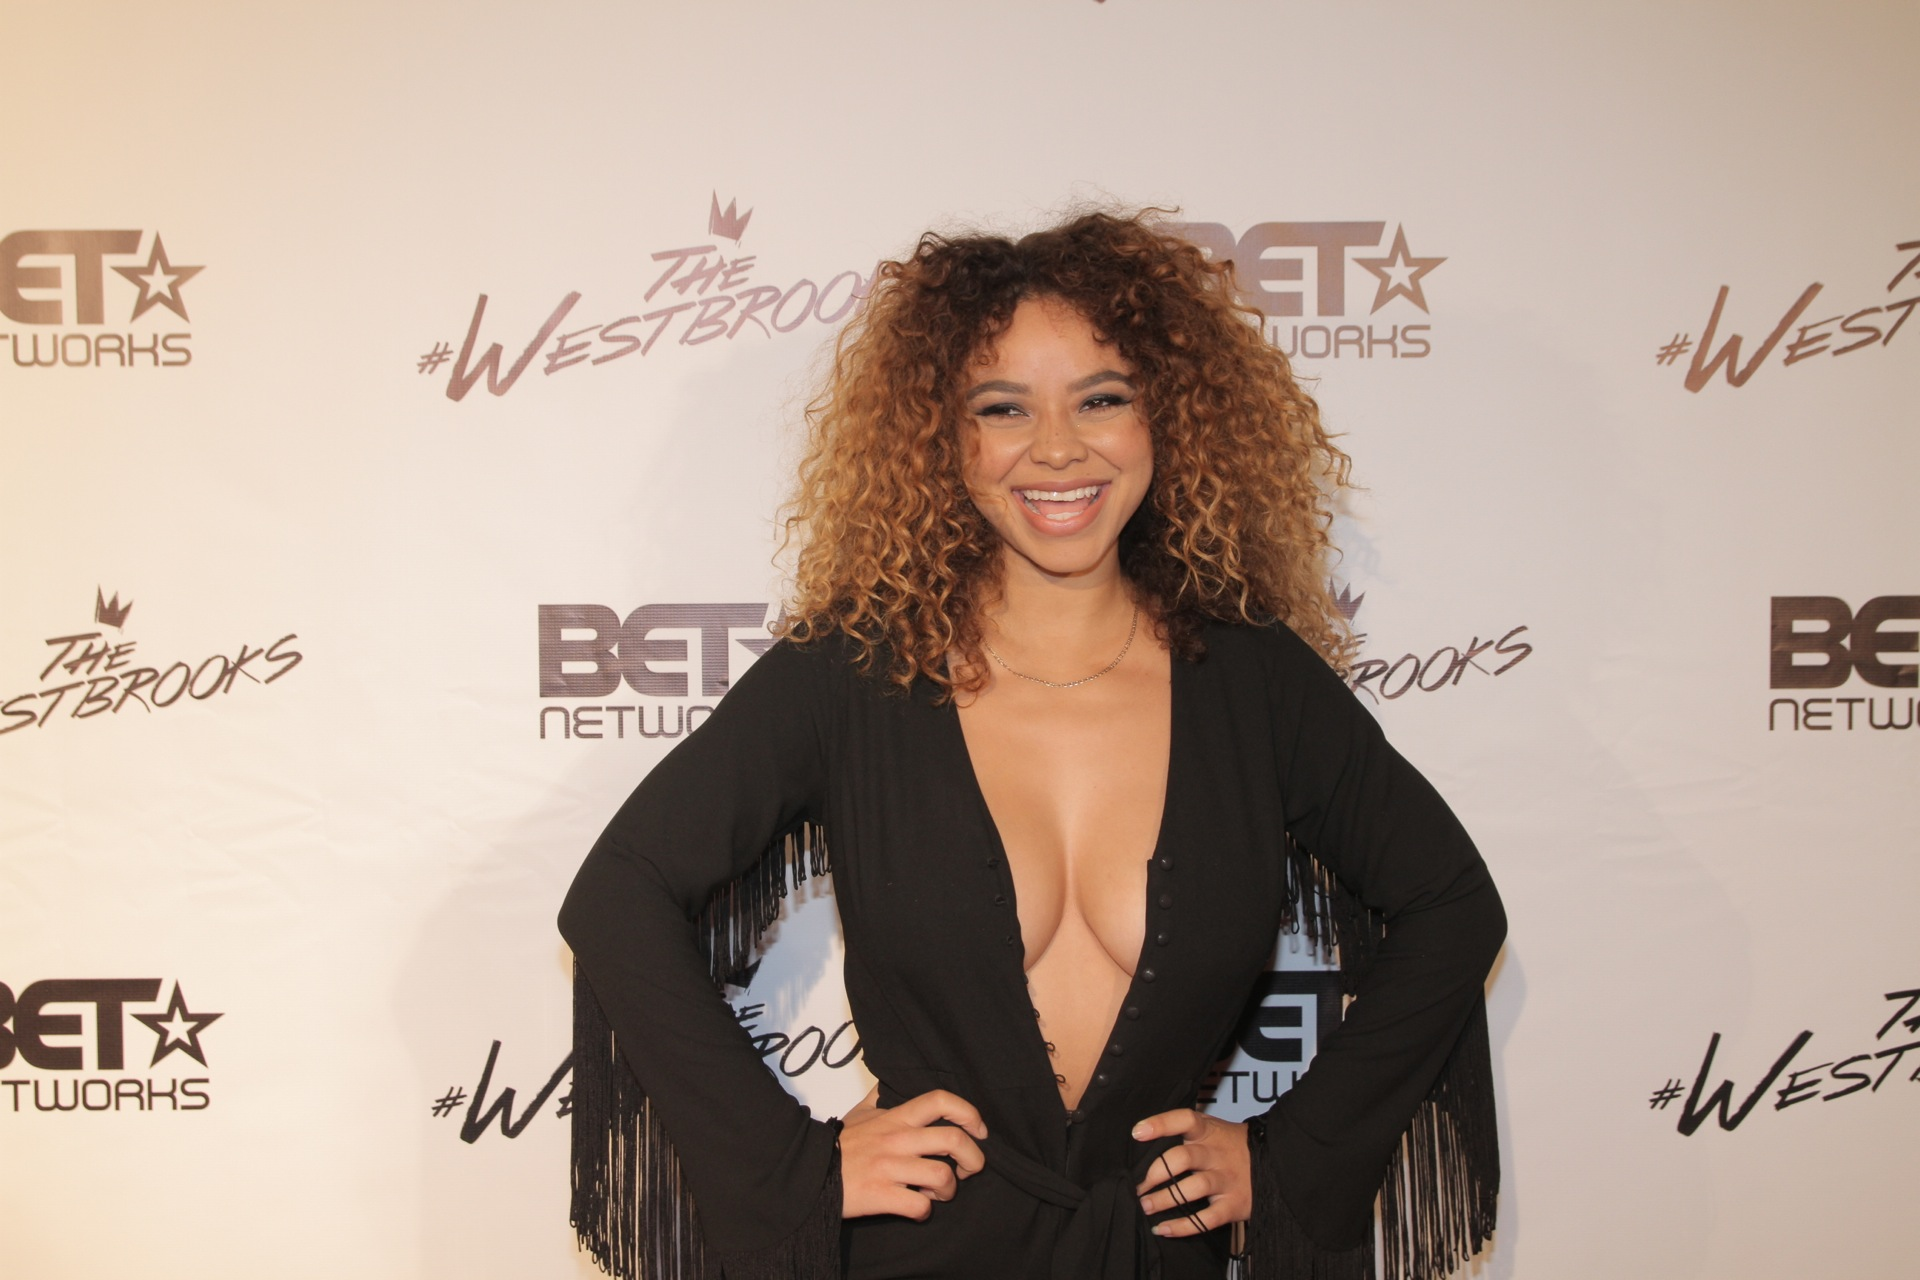 Paparazzi Crystal WestBrooks nude (44 photos), Sexy, Hot, Twitter, underwear 2017